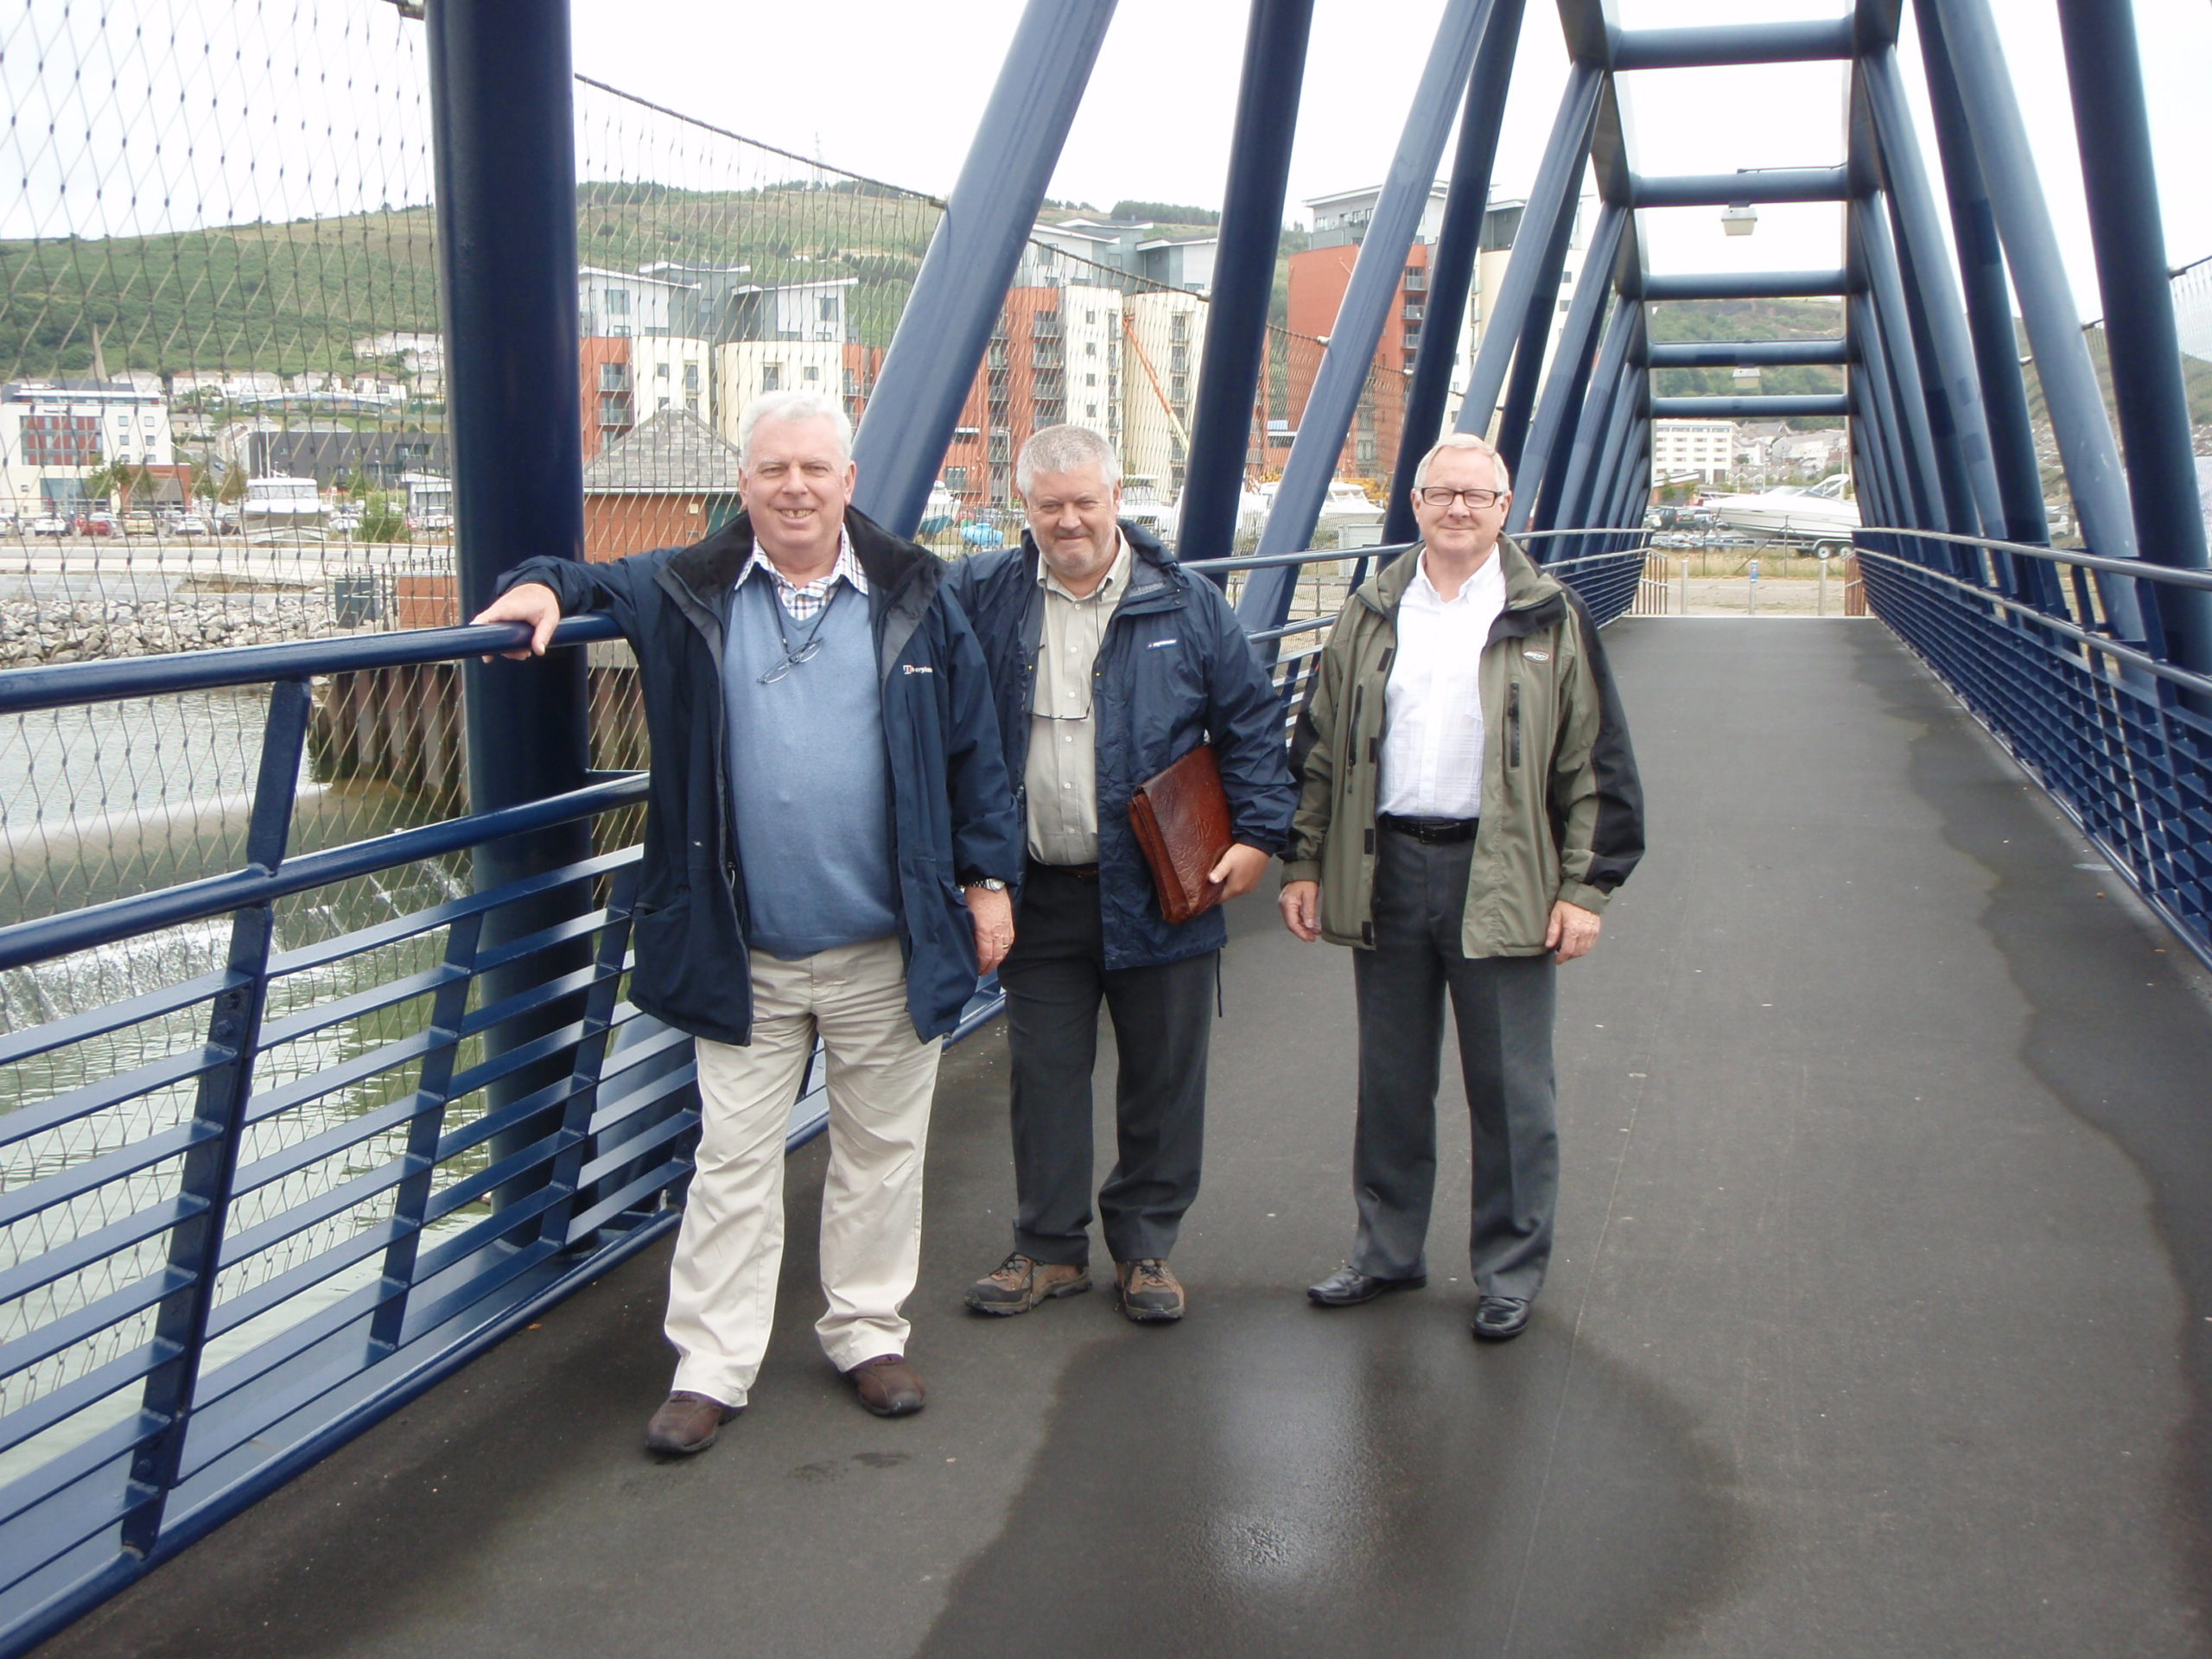 Afan Valley Angling Club members